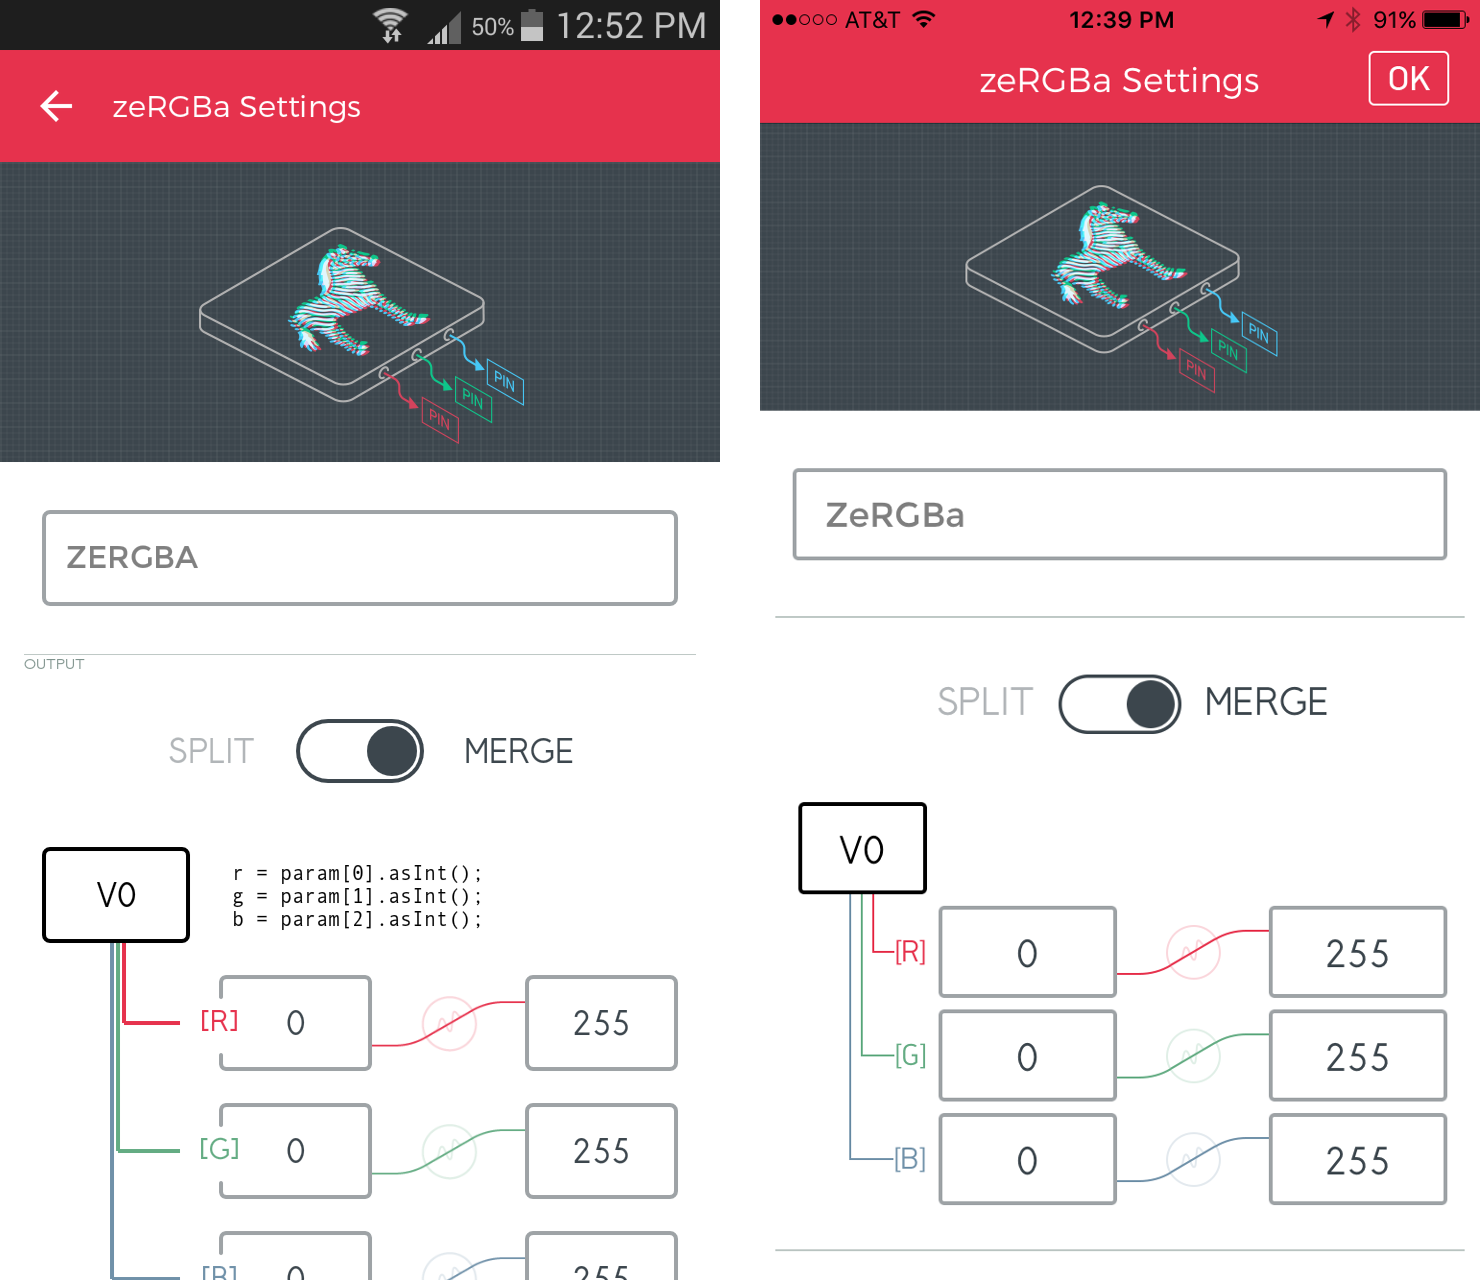 Getting Started With The Sparkfun Blynk Board Android Cable Schematic Slide Split Merge Switch Over To Then Tap Pin And Set Box V0 Widget Settings Should Look Like This